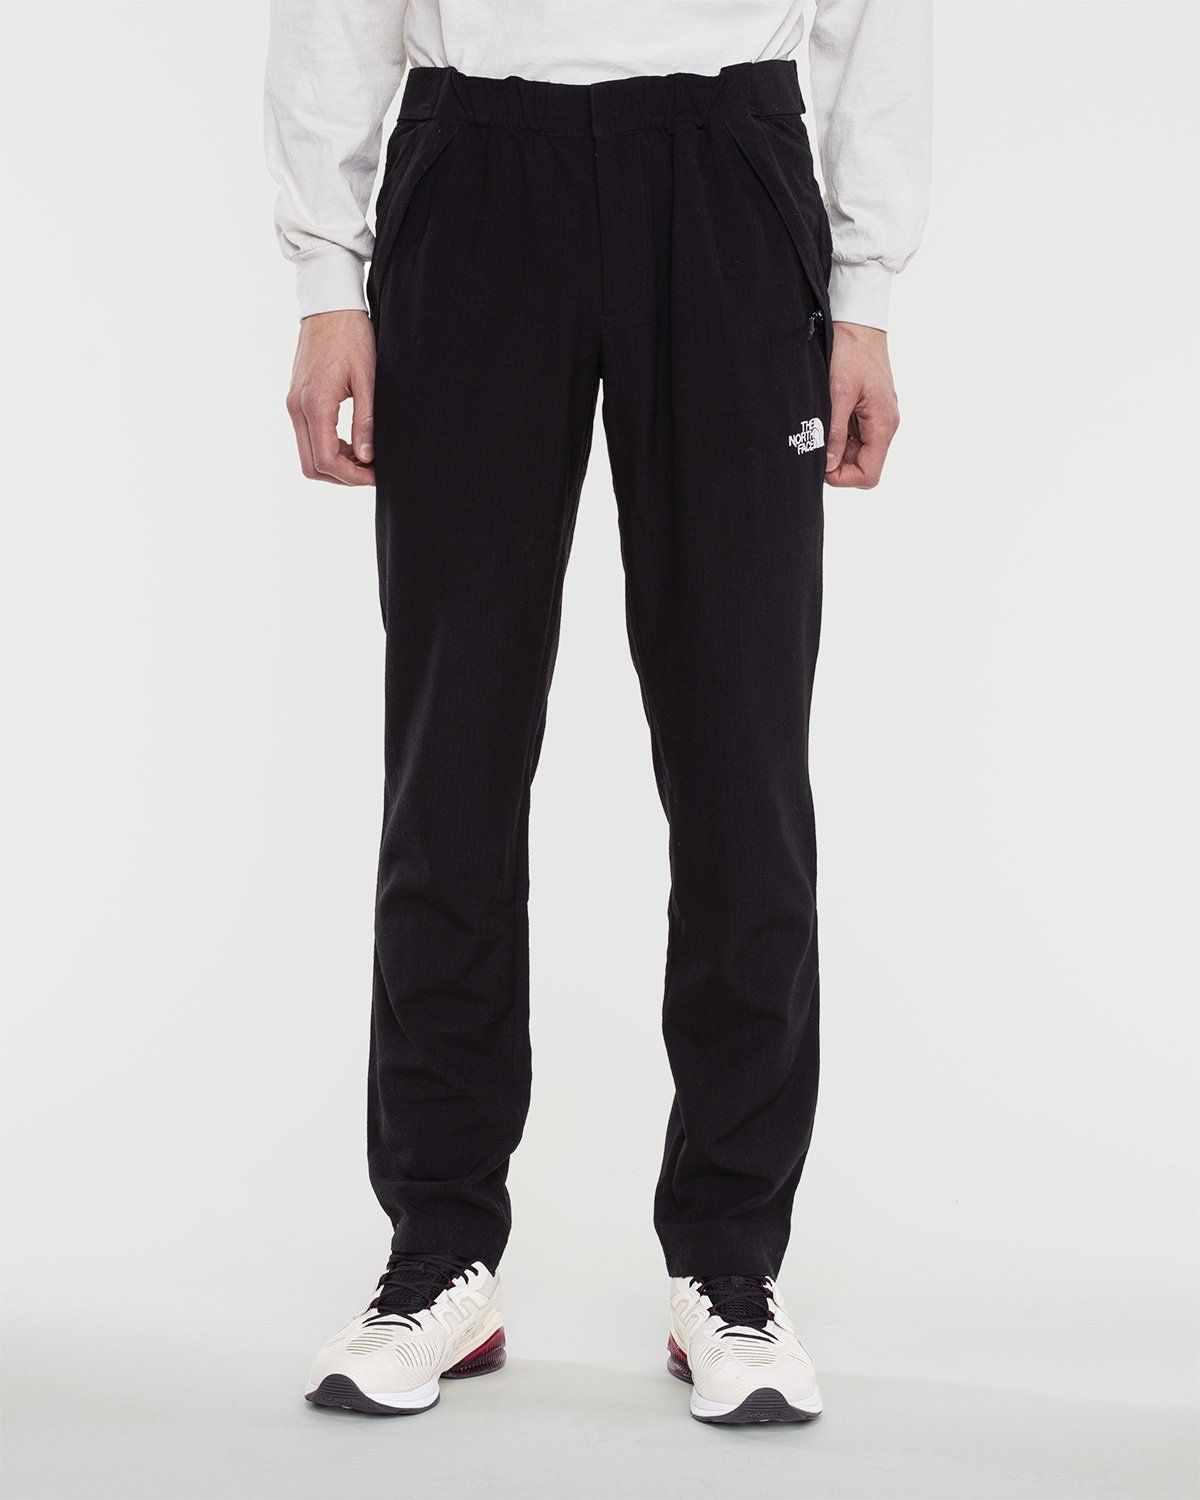 The North Face Black Series - Ripstop Trousers Black - Image 2